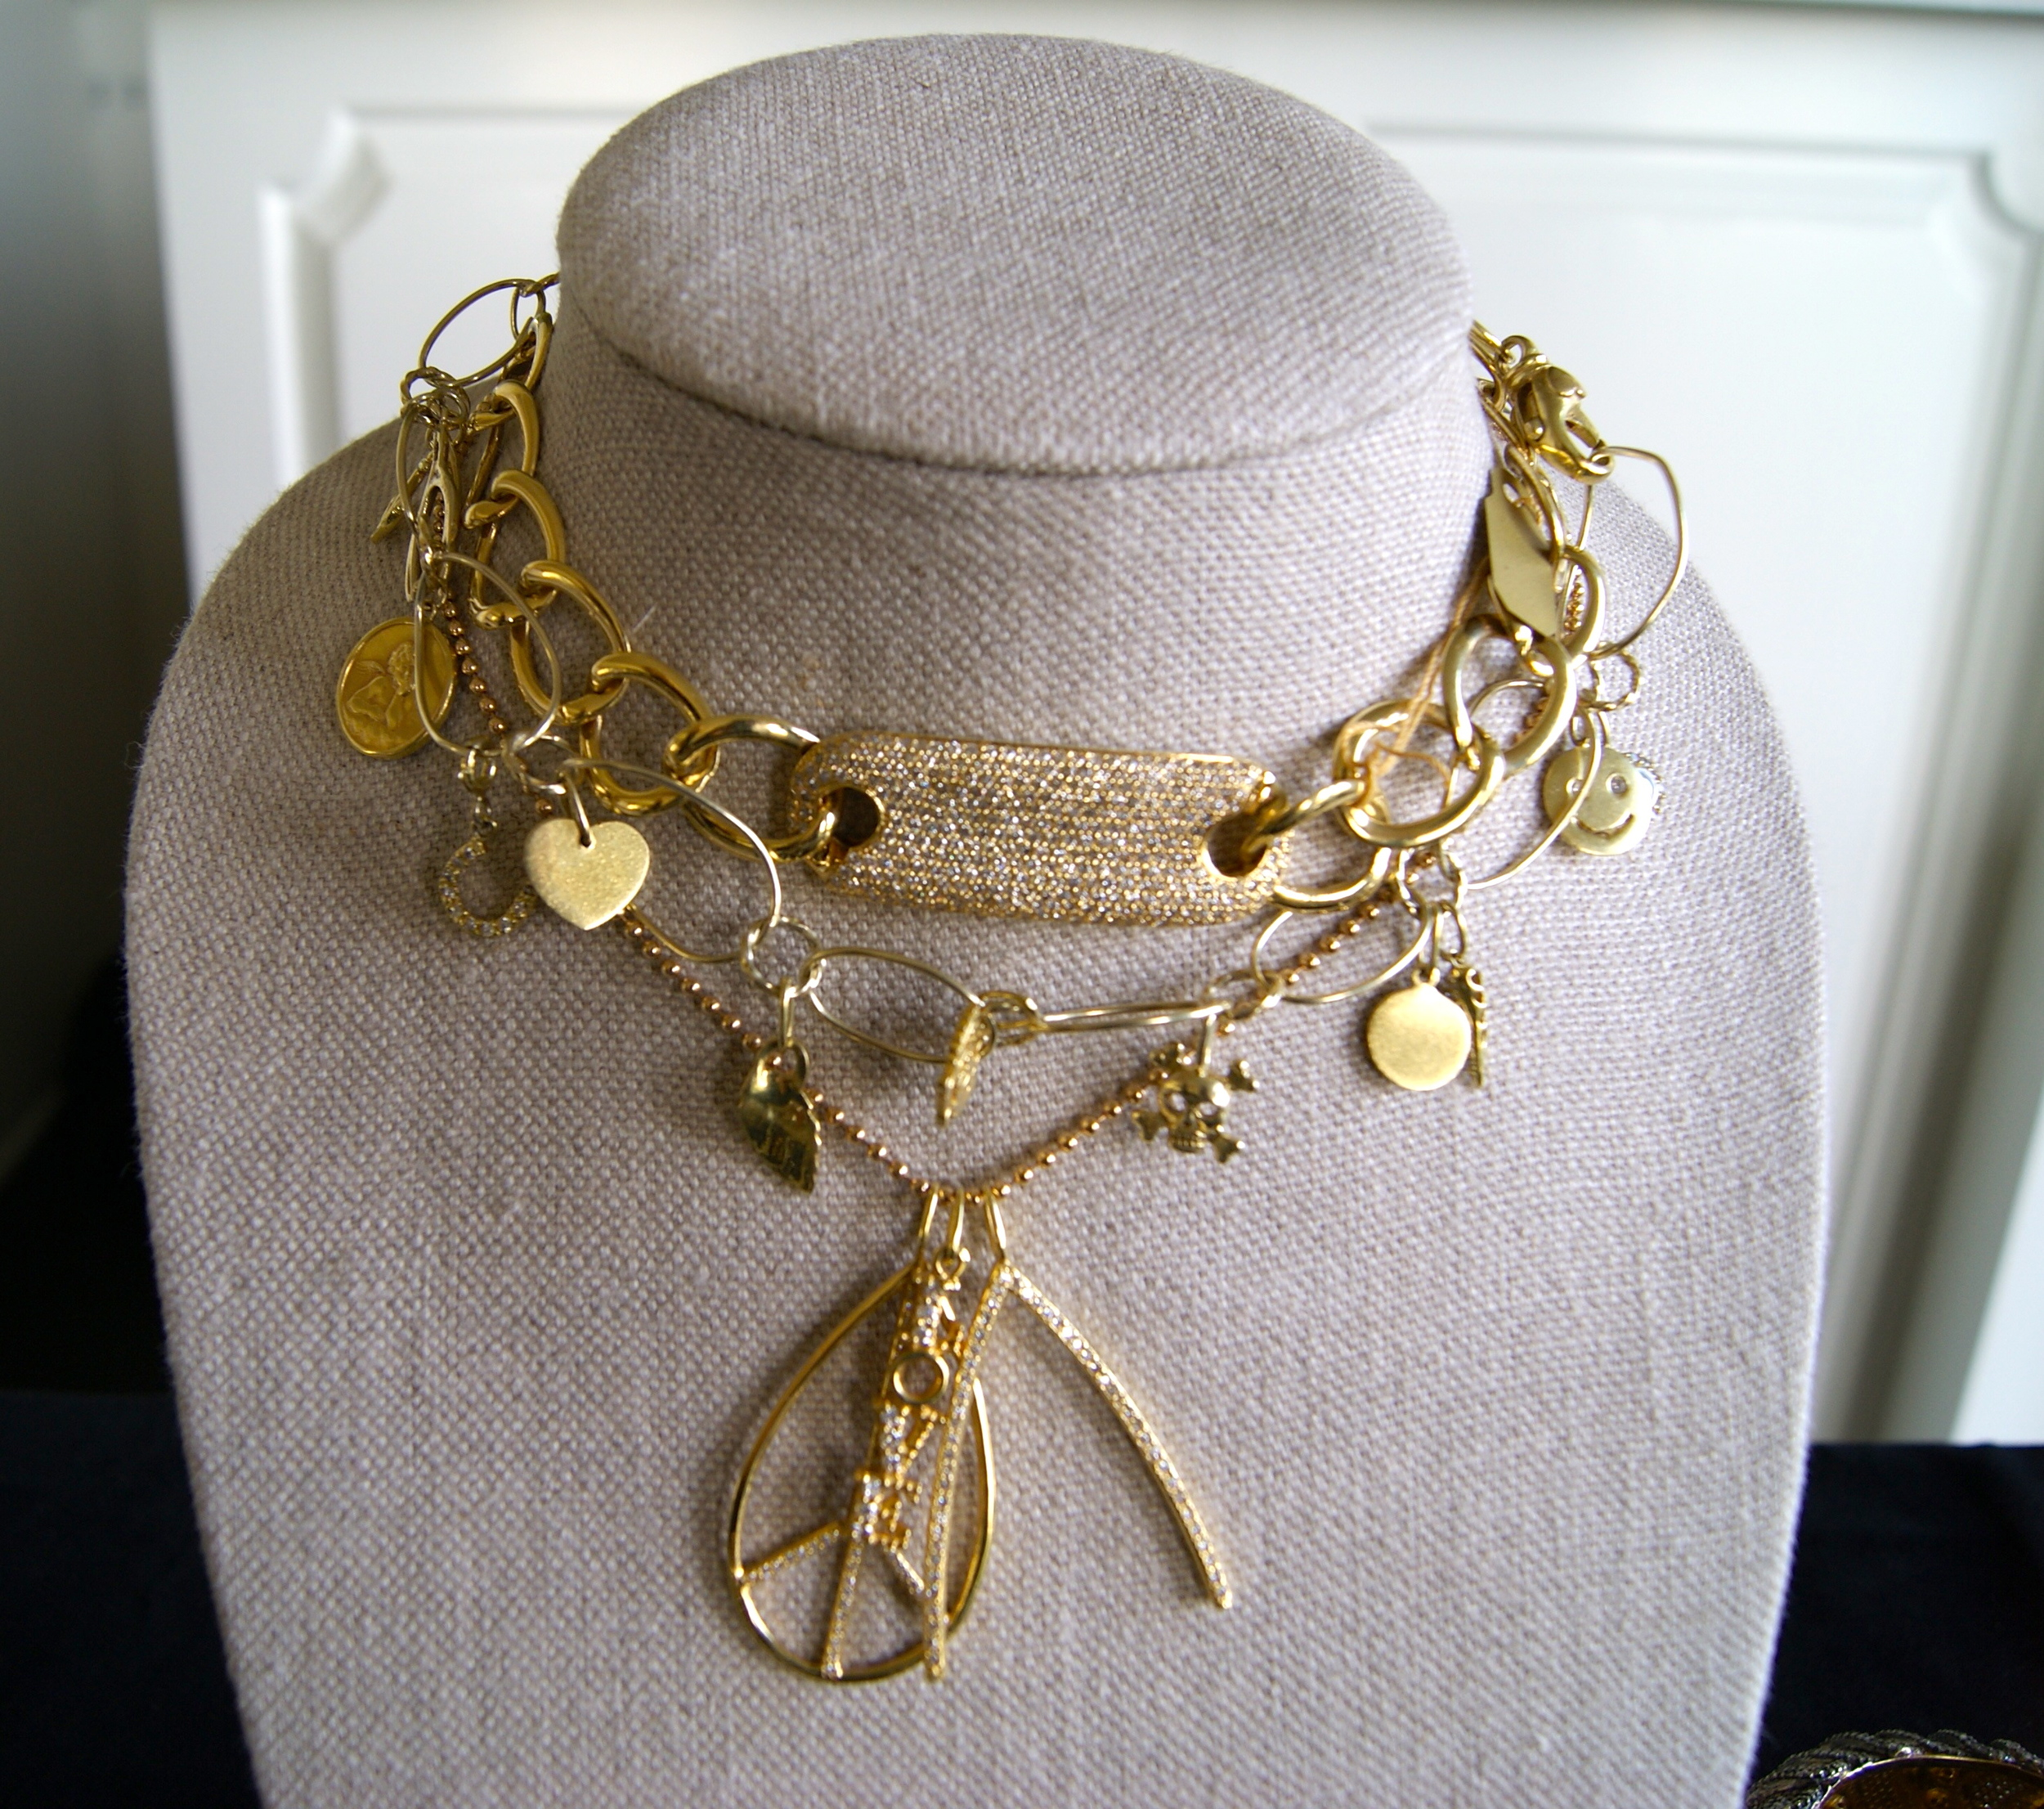 Kelly Gerber Jewelry. Details on a grouping of gold and diamond necklaces.